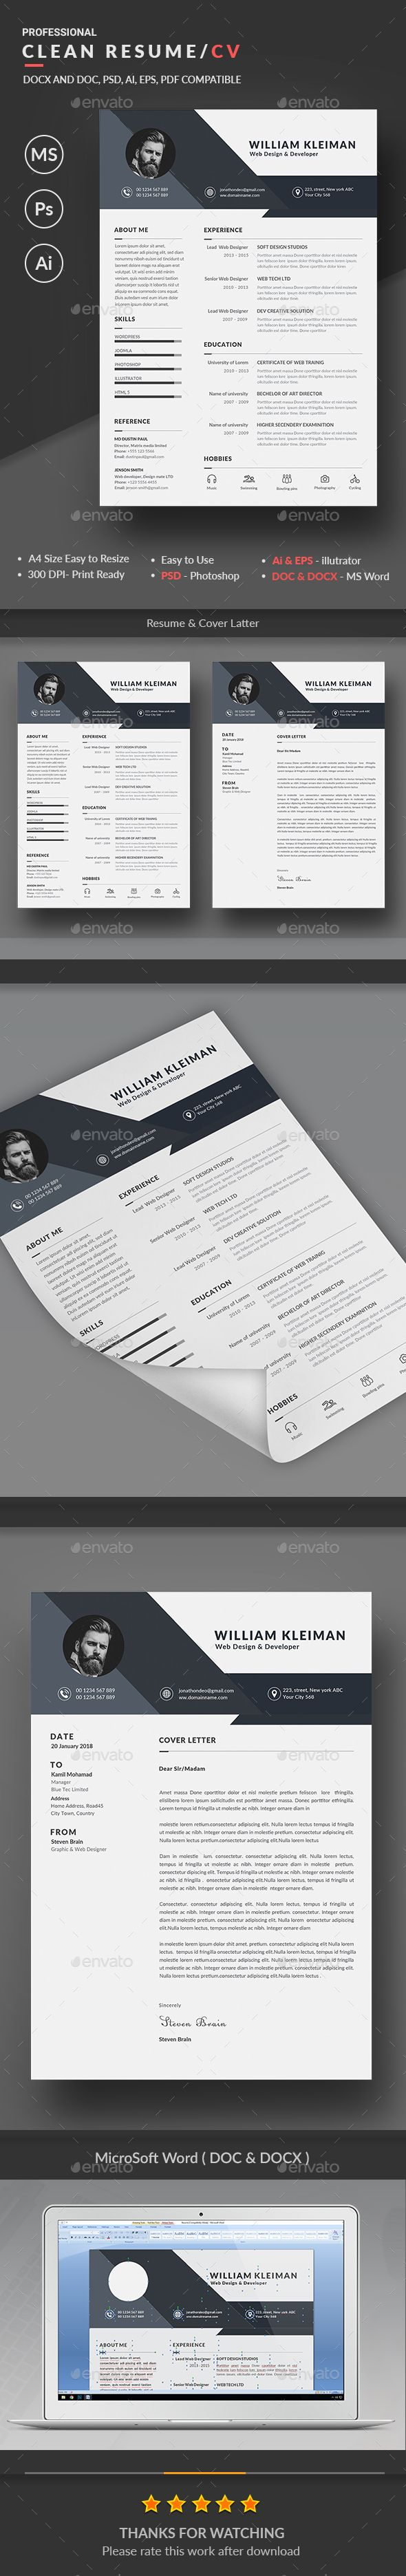 Resume 423 best CV book images